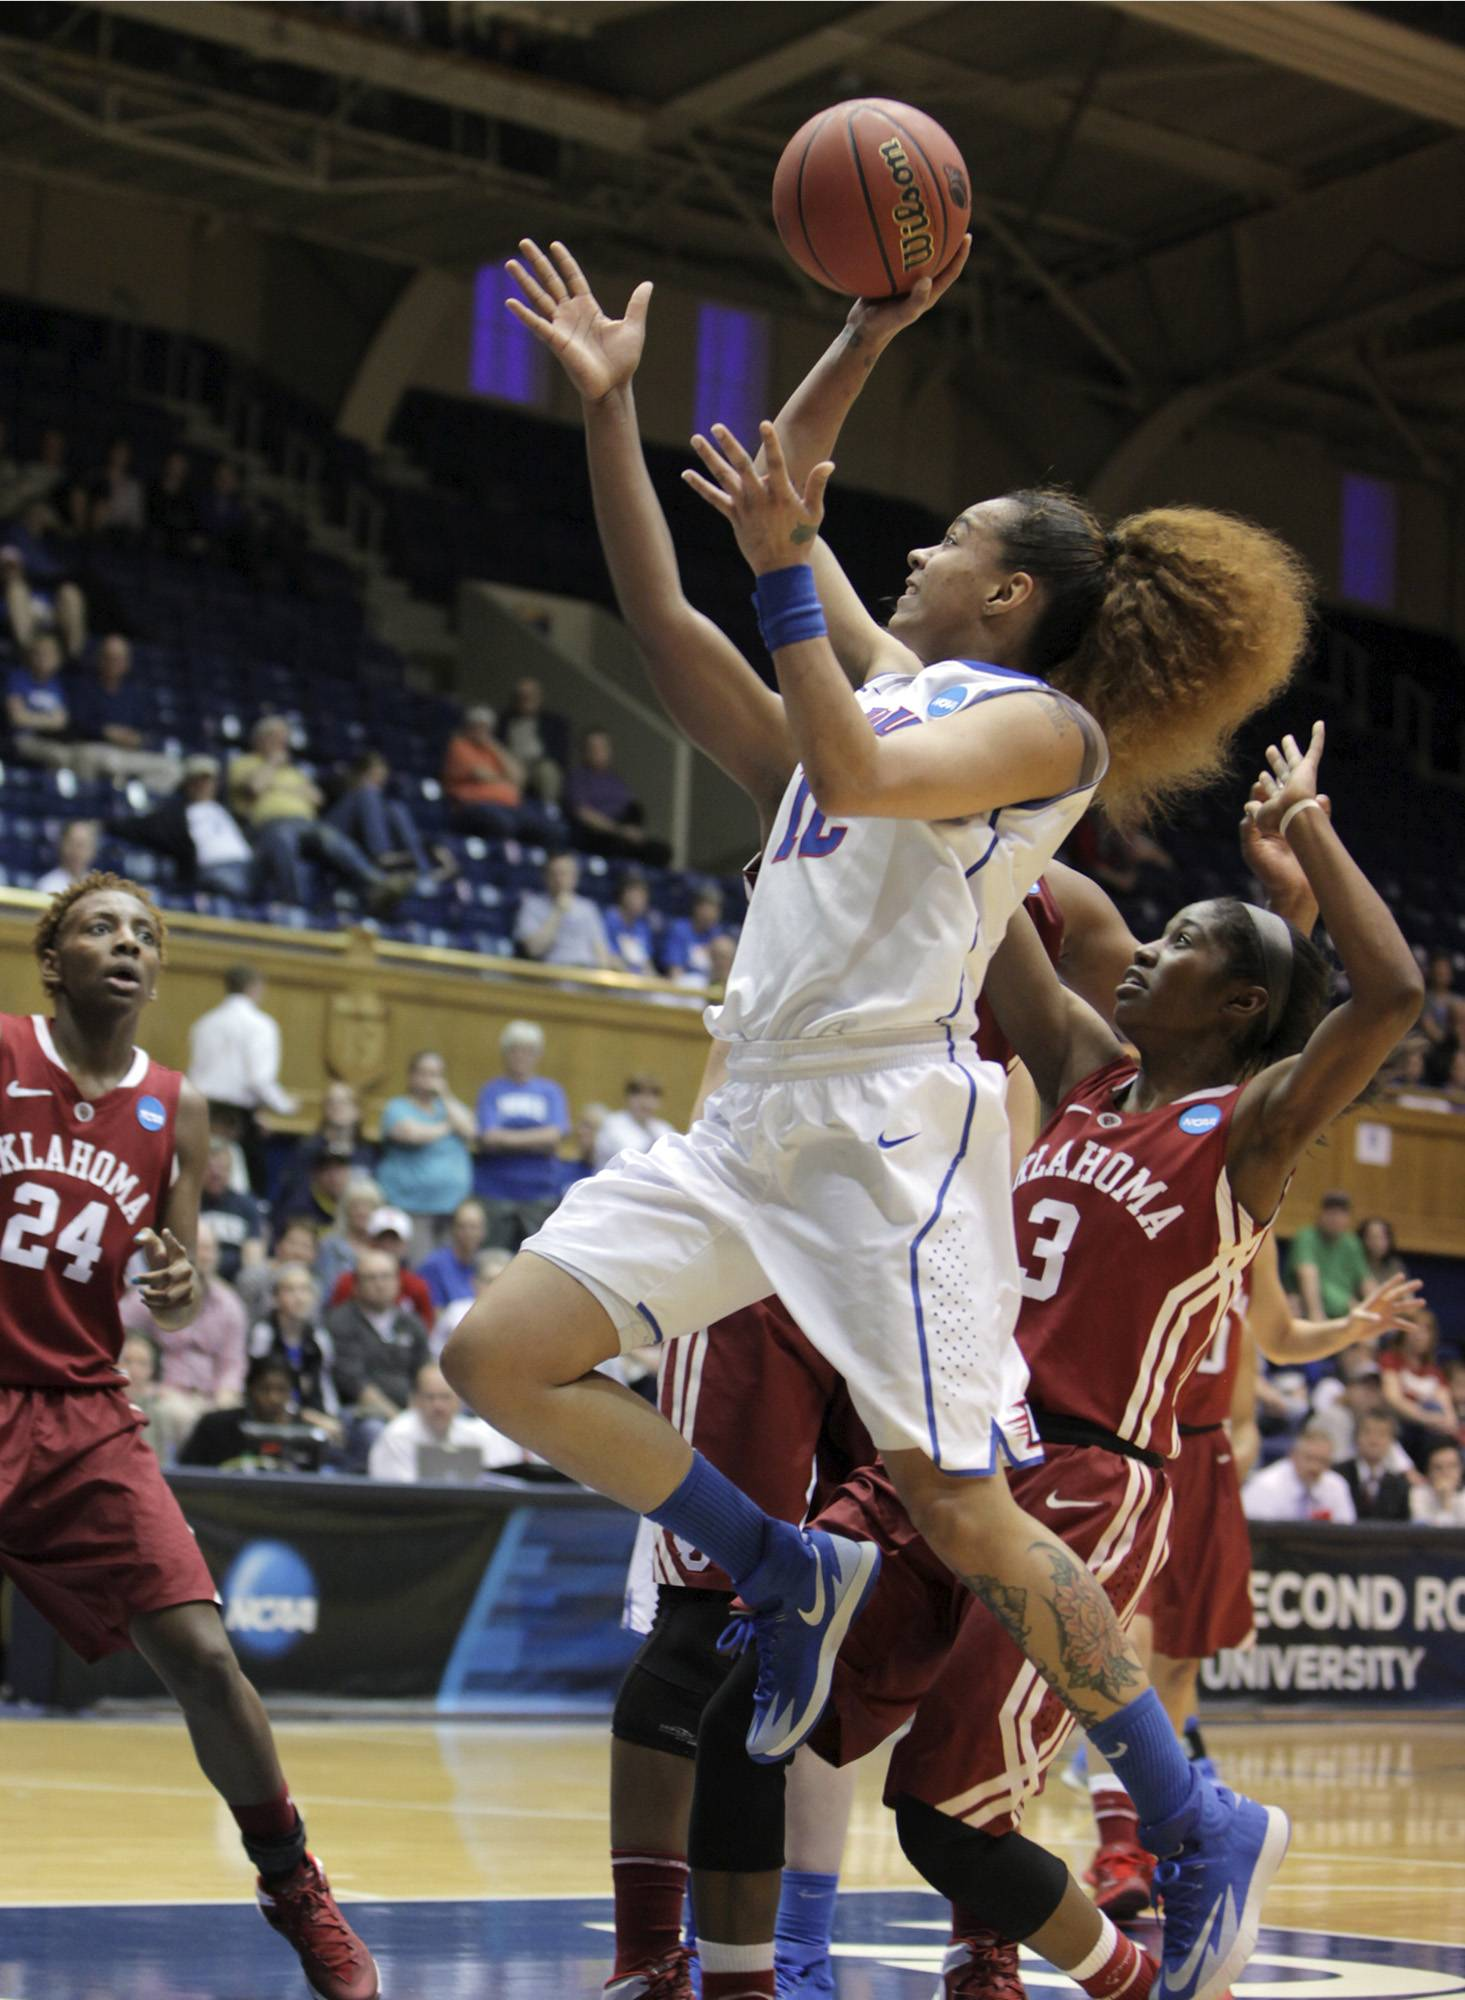 DePaul's Brittany Hrynko drives to the basket between Oklahoma's Aaryn Ellenberg (3) and Sharane Campbell (24) during their first-round game in the NCAA women's college basketball tournament Saturday in Durham, N.C. DePaul won 104-100.